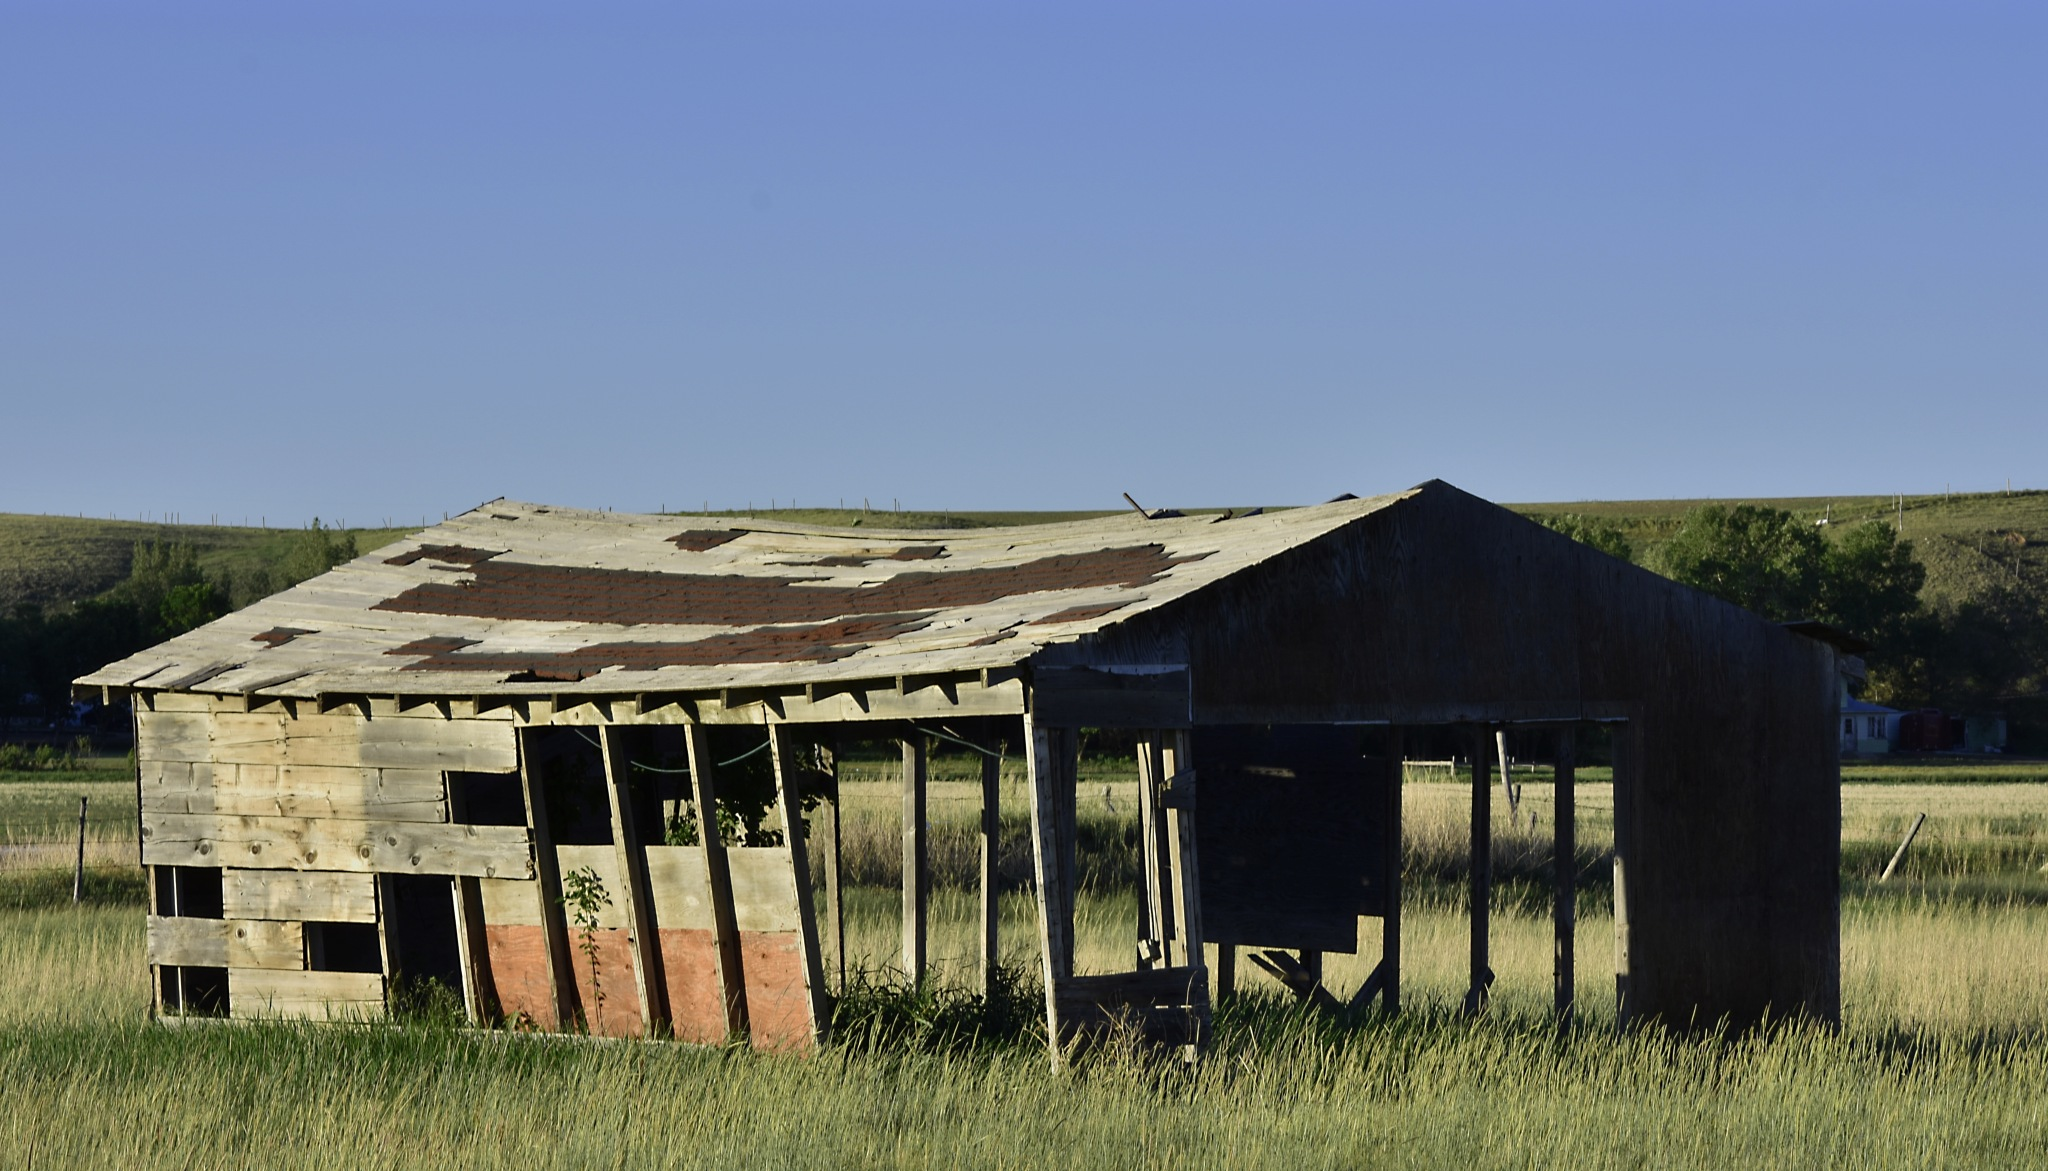 Barn in Willow Bunch by Dan Archer